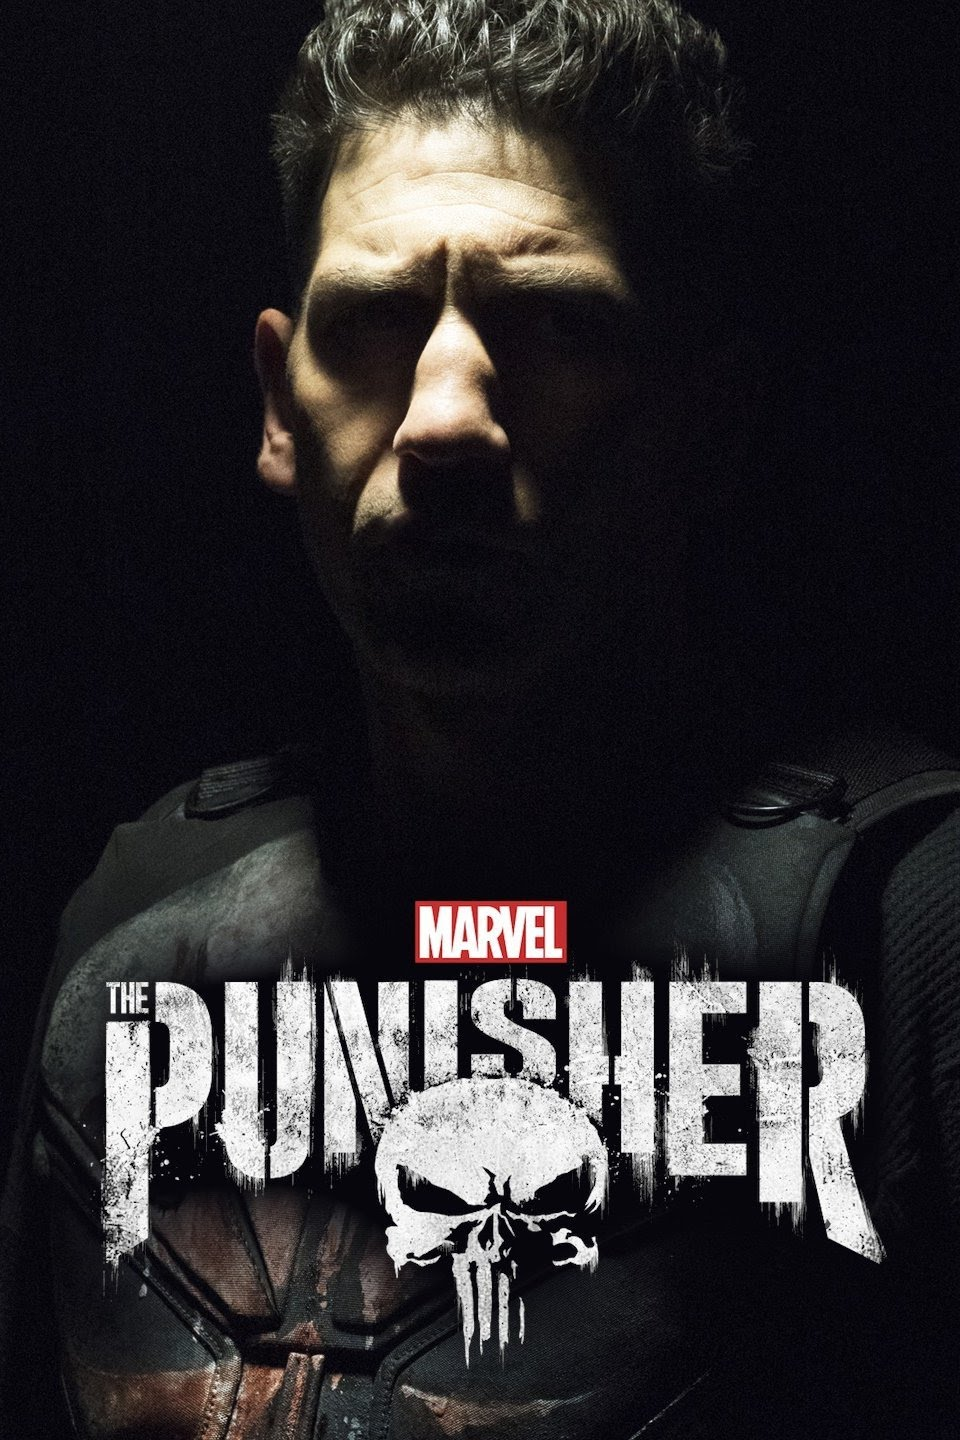 Marvel's The Punisher S01 E02 Cut